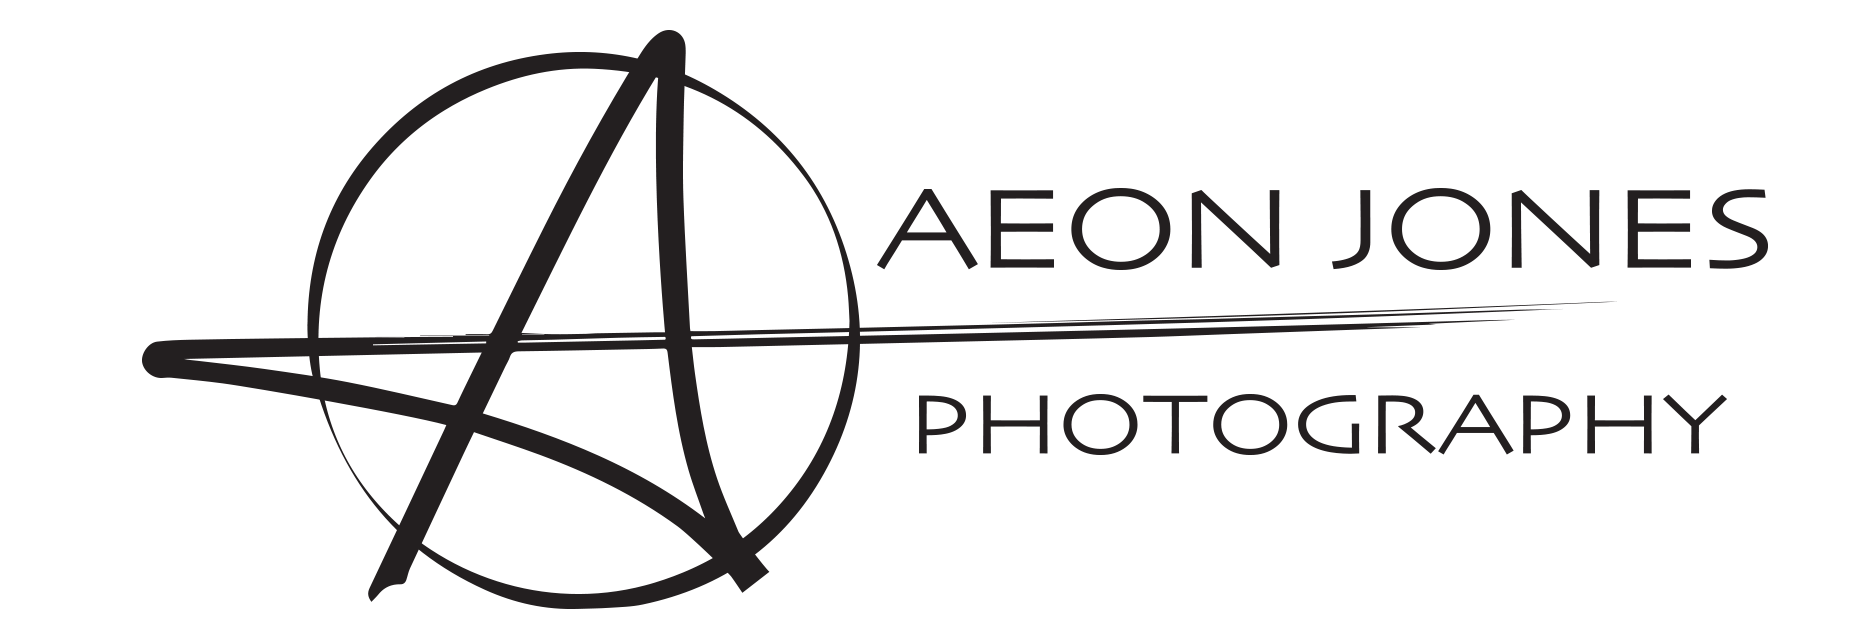 AEON JONES PHOTOGRAPHY